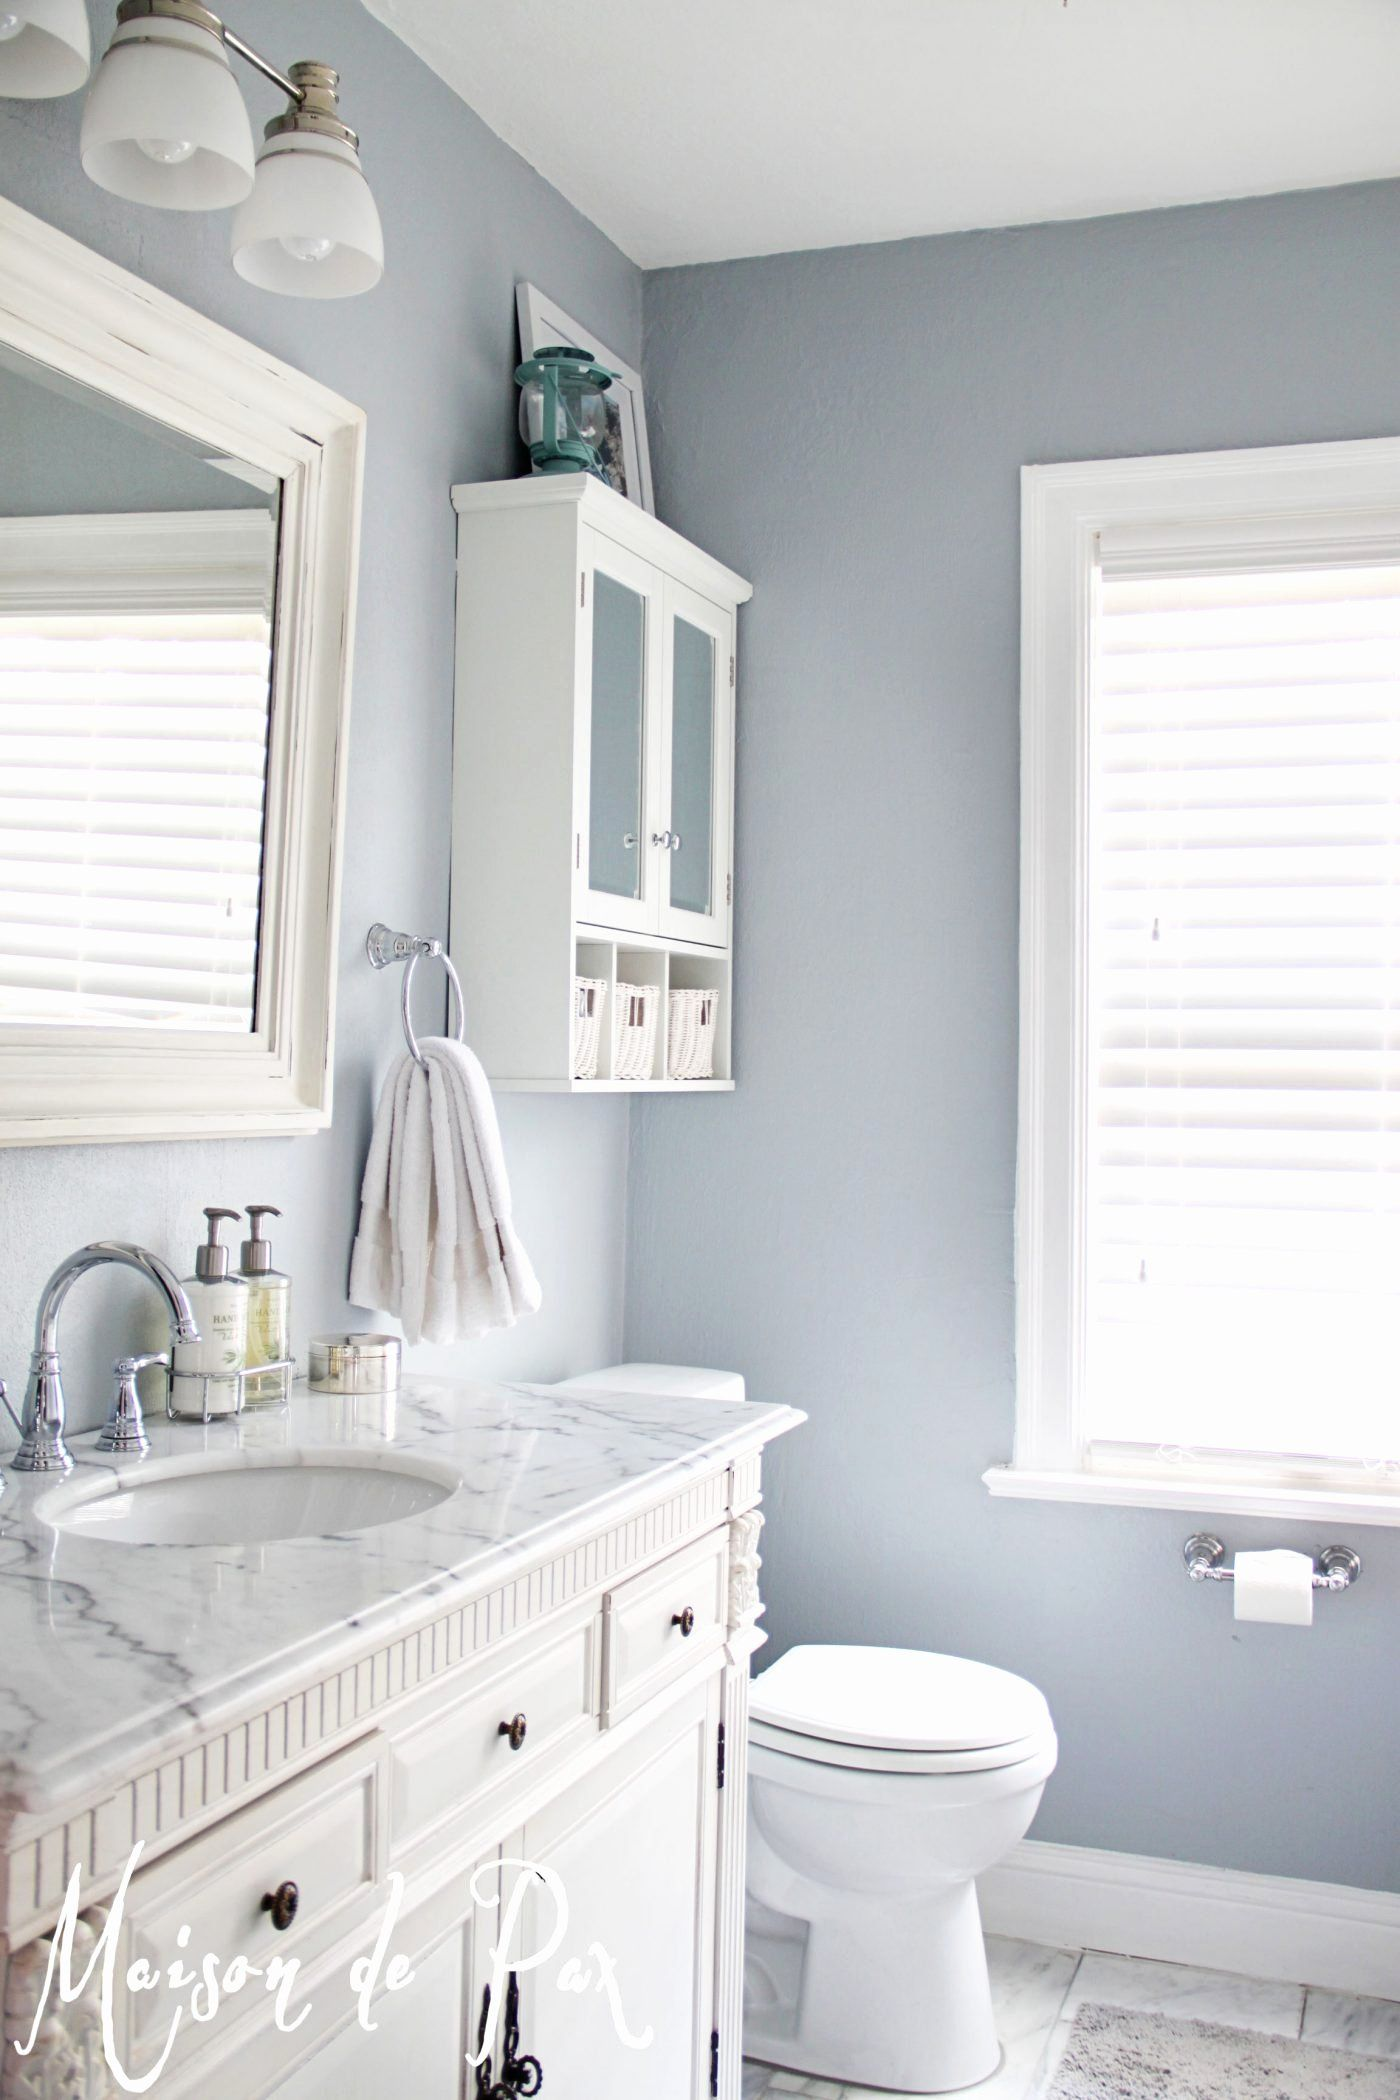 Blue And Gray Bathroom Decor Best Of How To Design A Small Bathroom In 2020 Small Bathroom Colors Small Bathroom Paint Small Bathroom Remodel